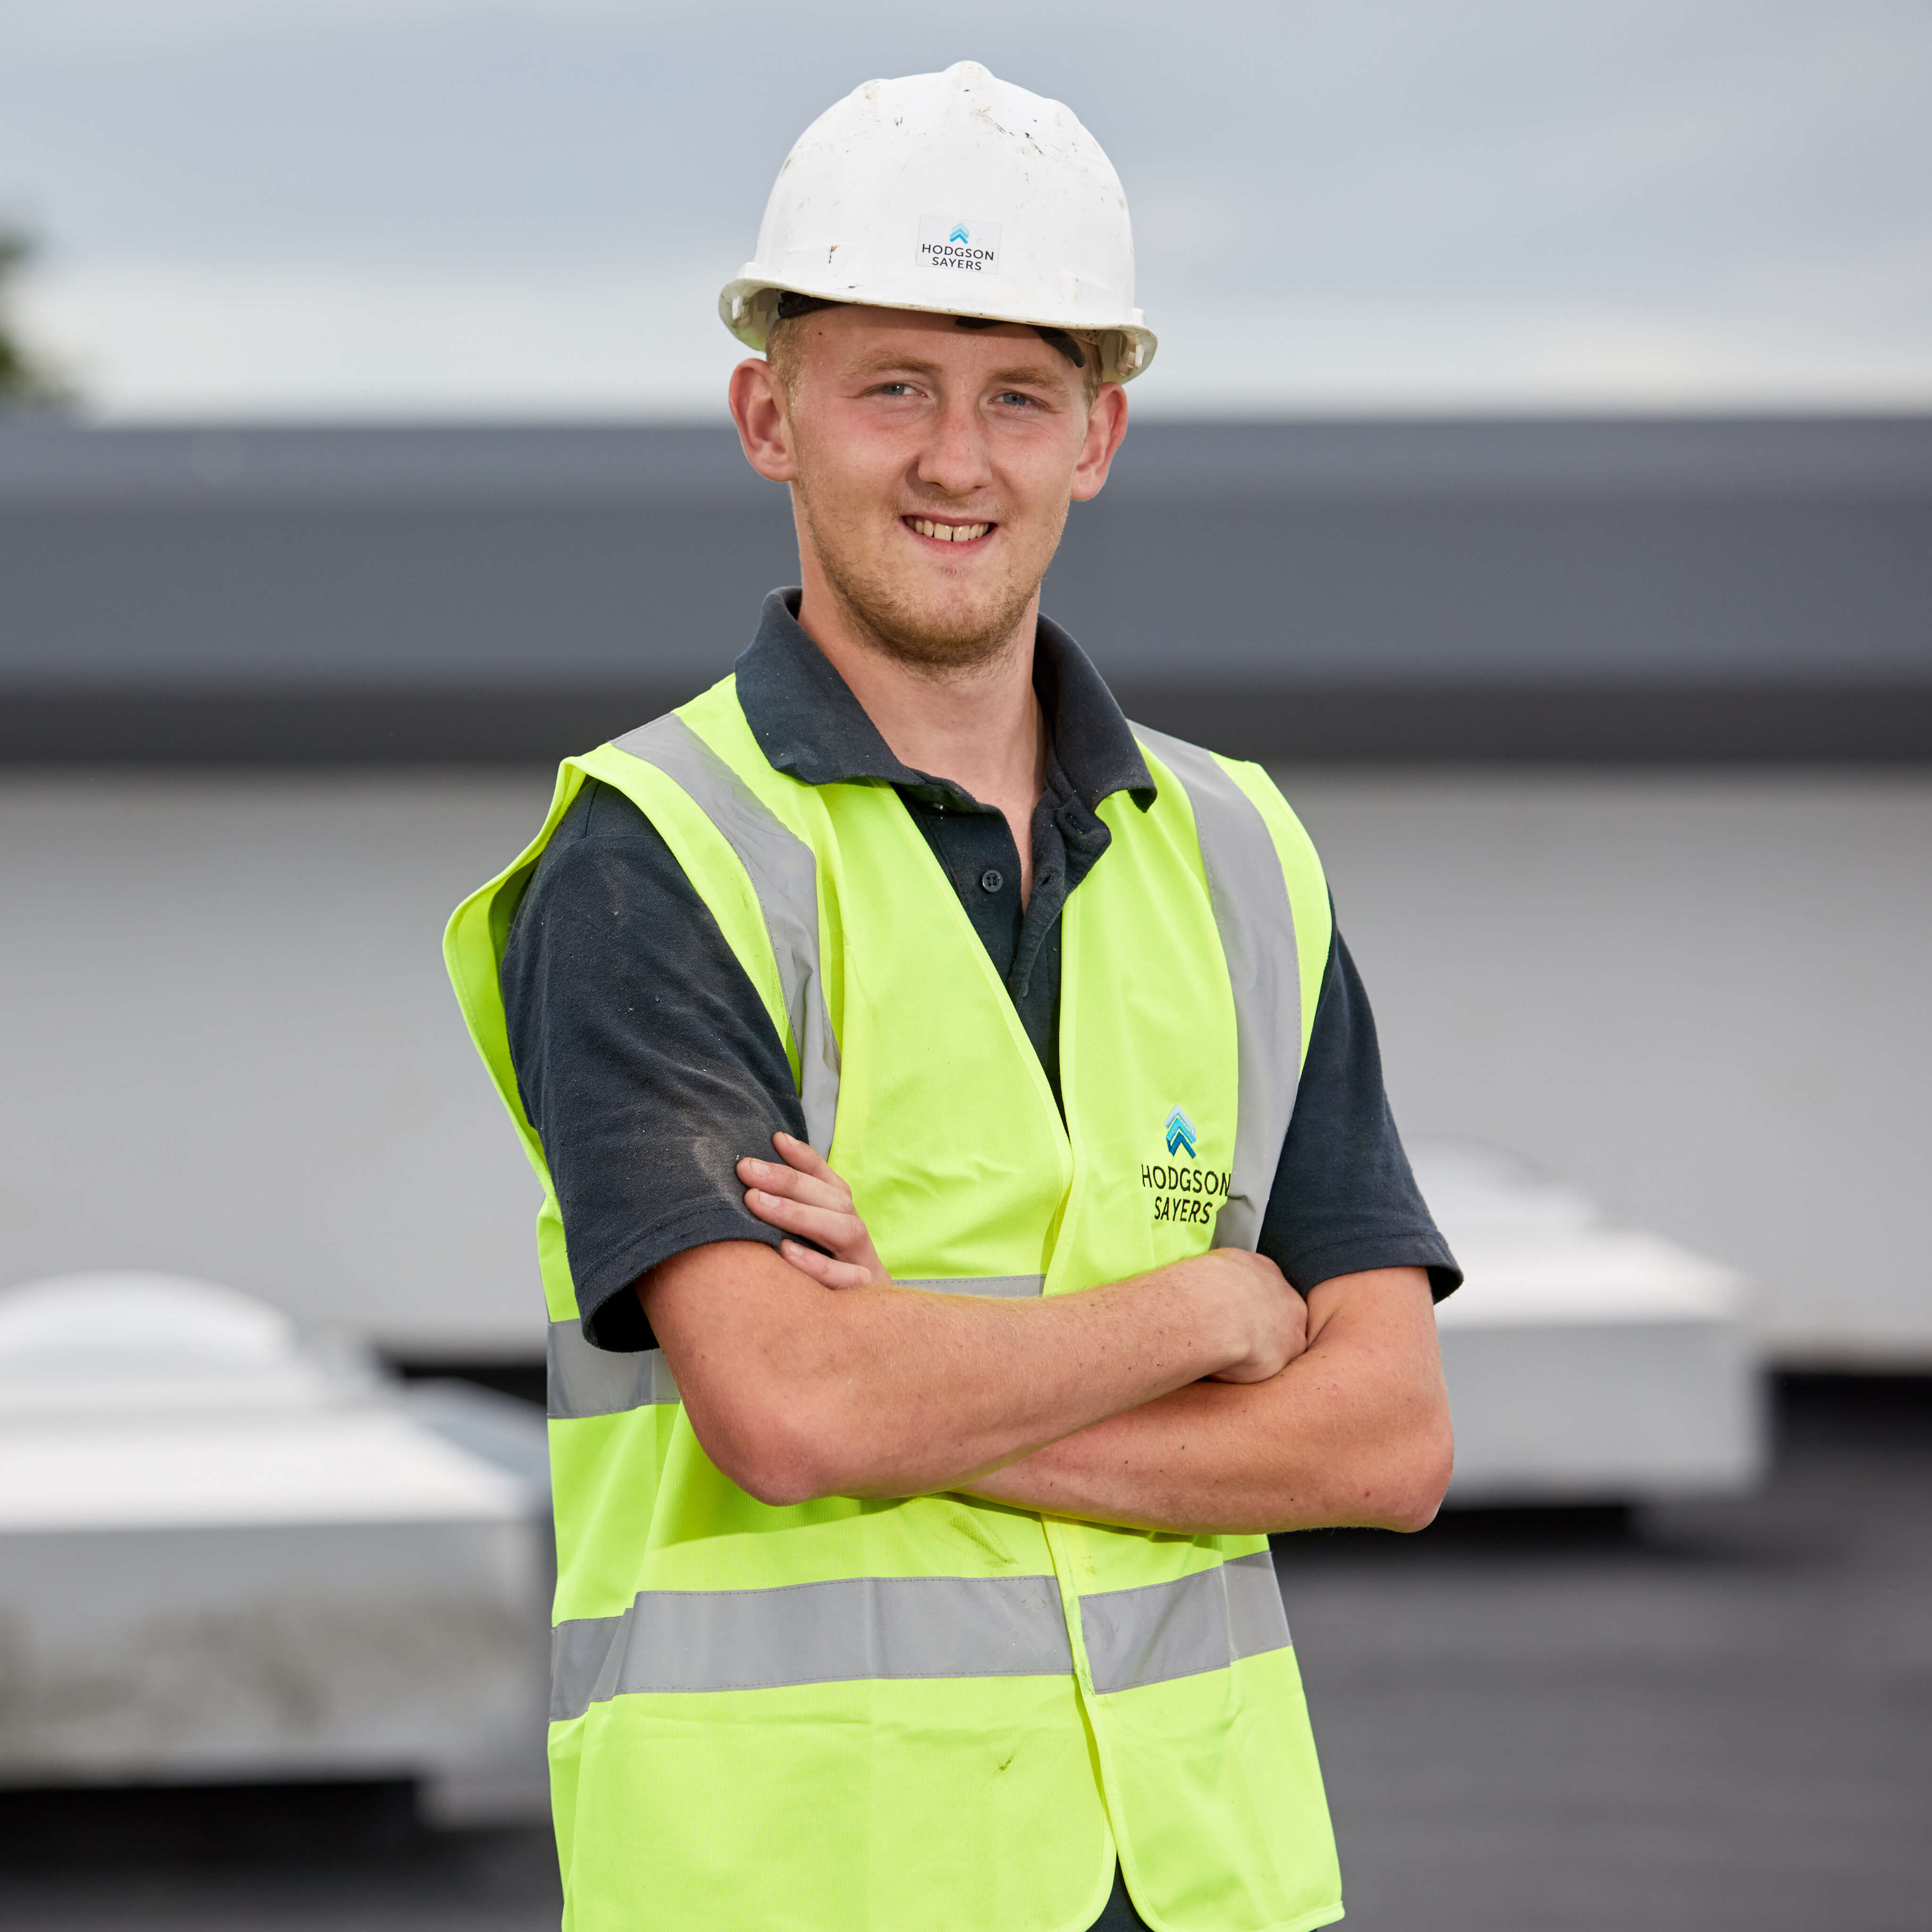 Kieran Forster Winner BMI Icopal Apprentice of the Year Flat Roofing